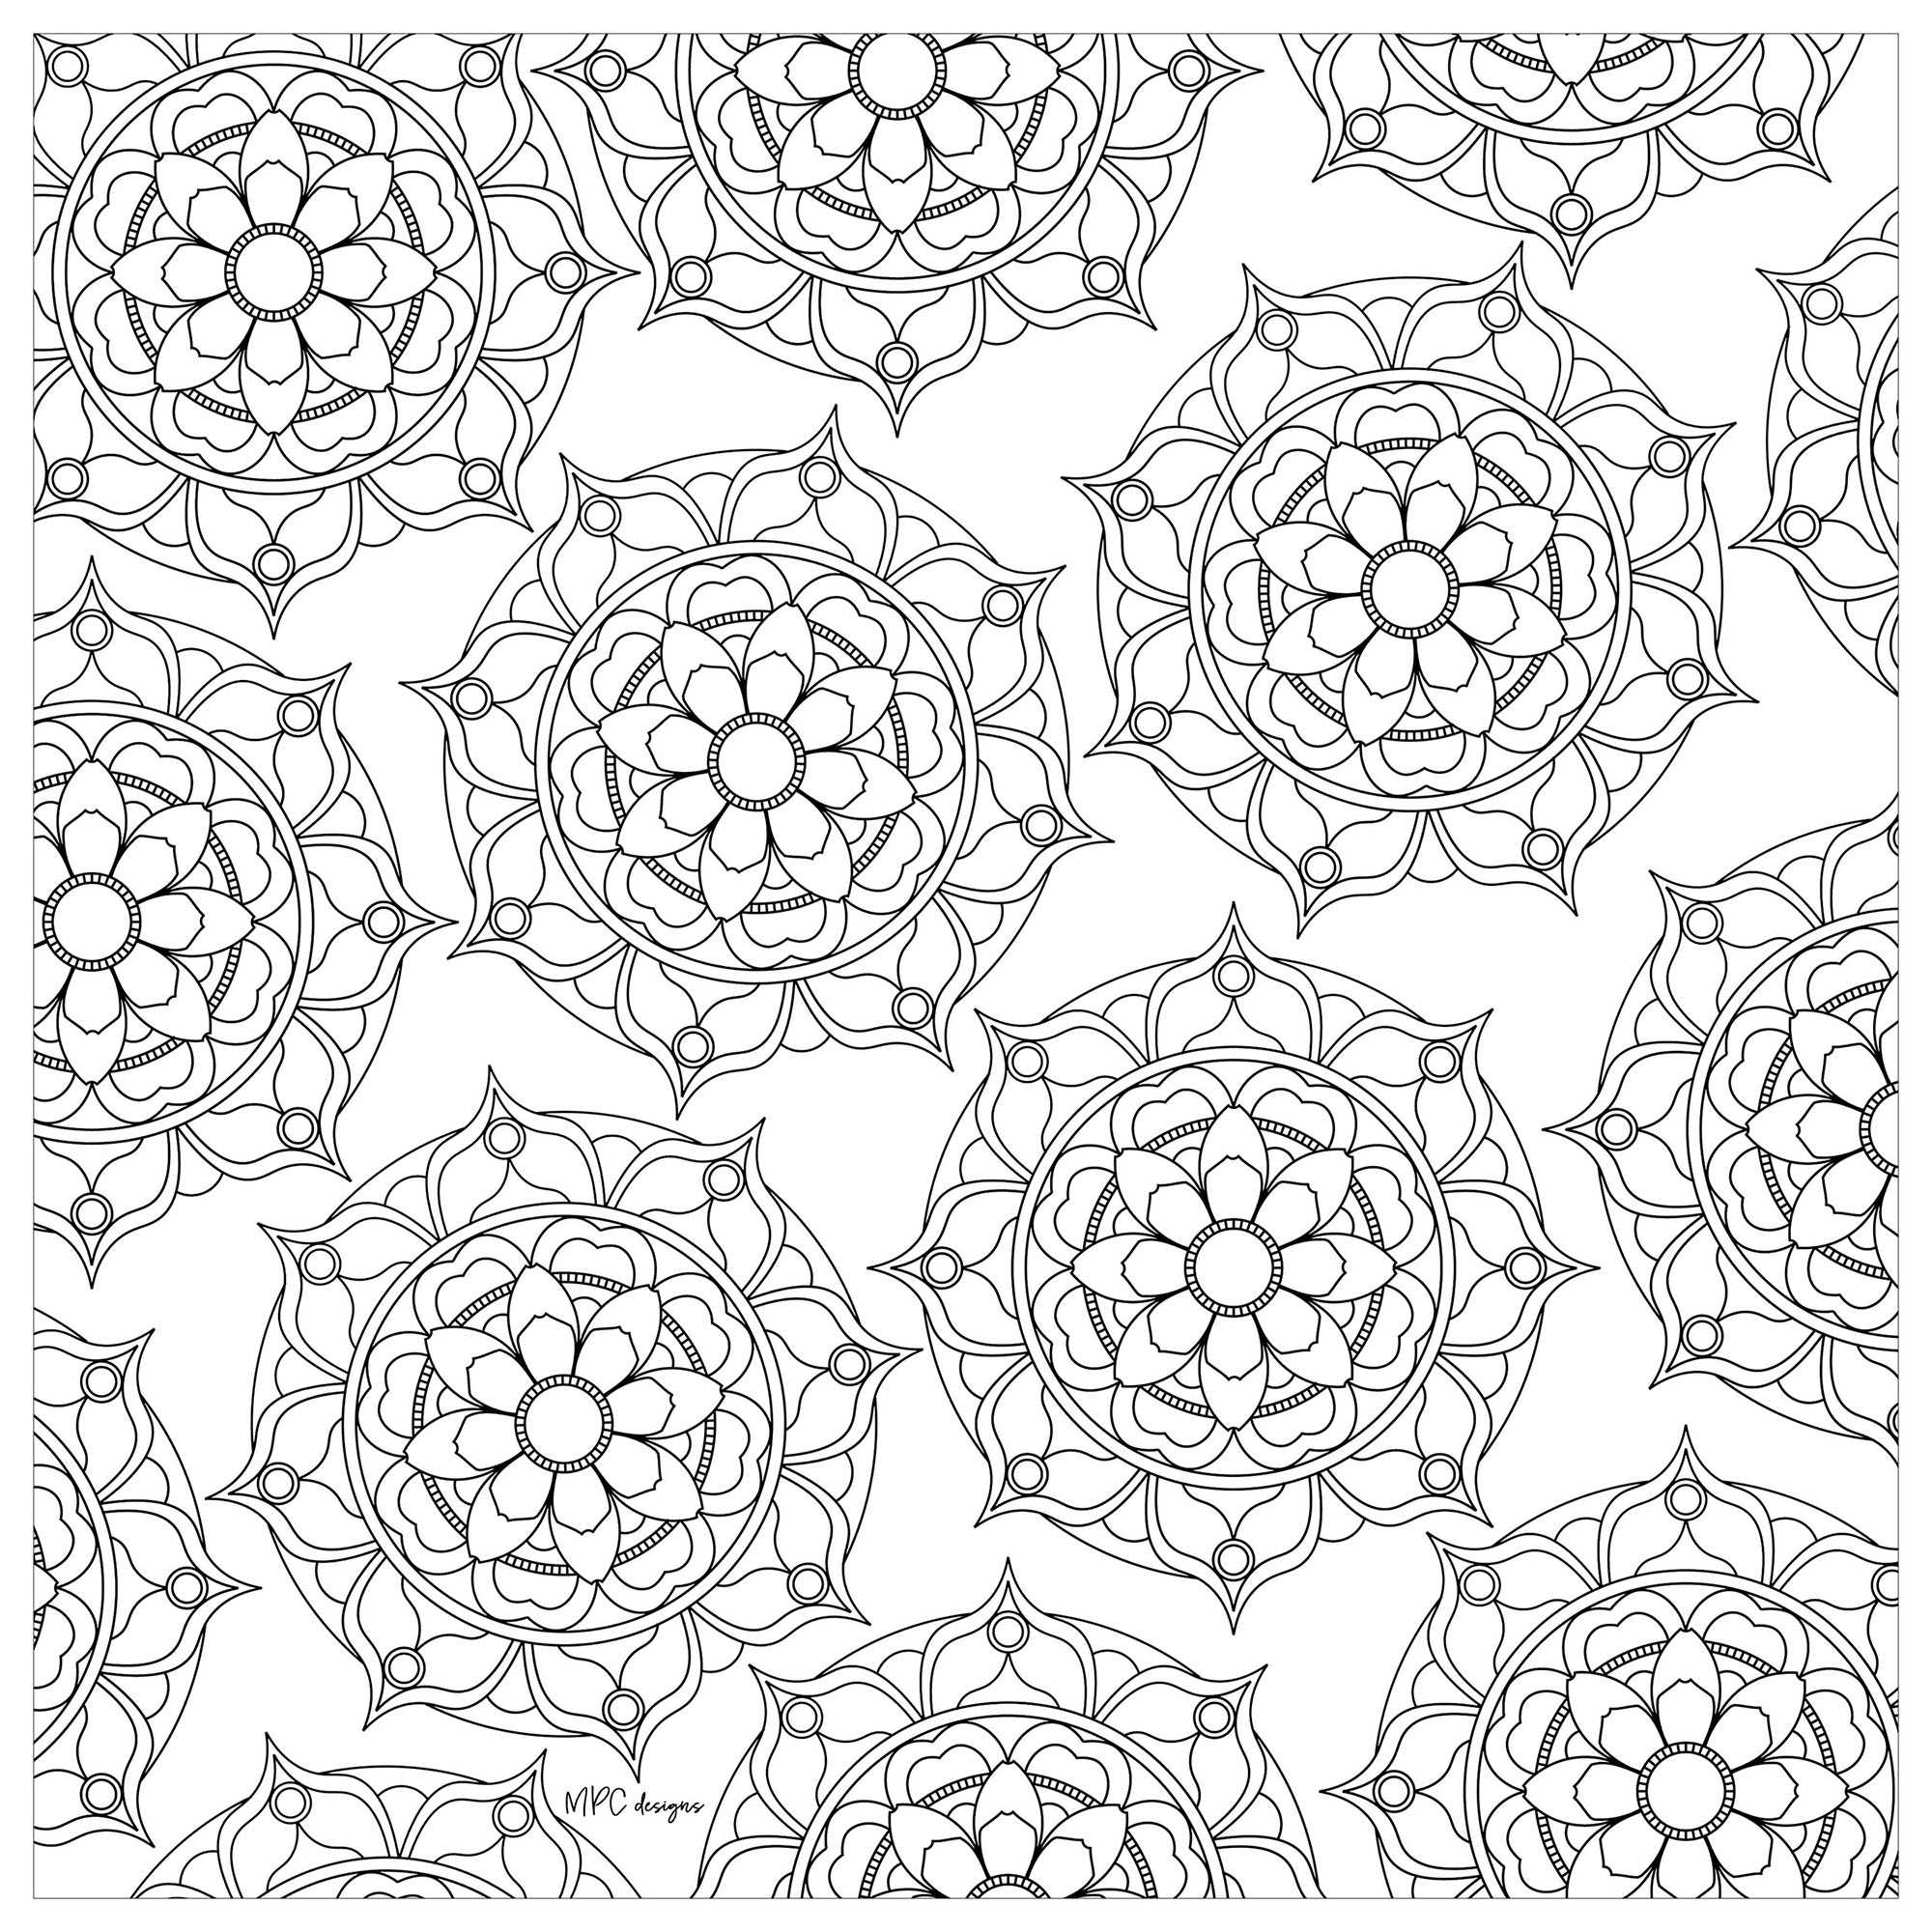 Mandalas coloring page to download for free